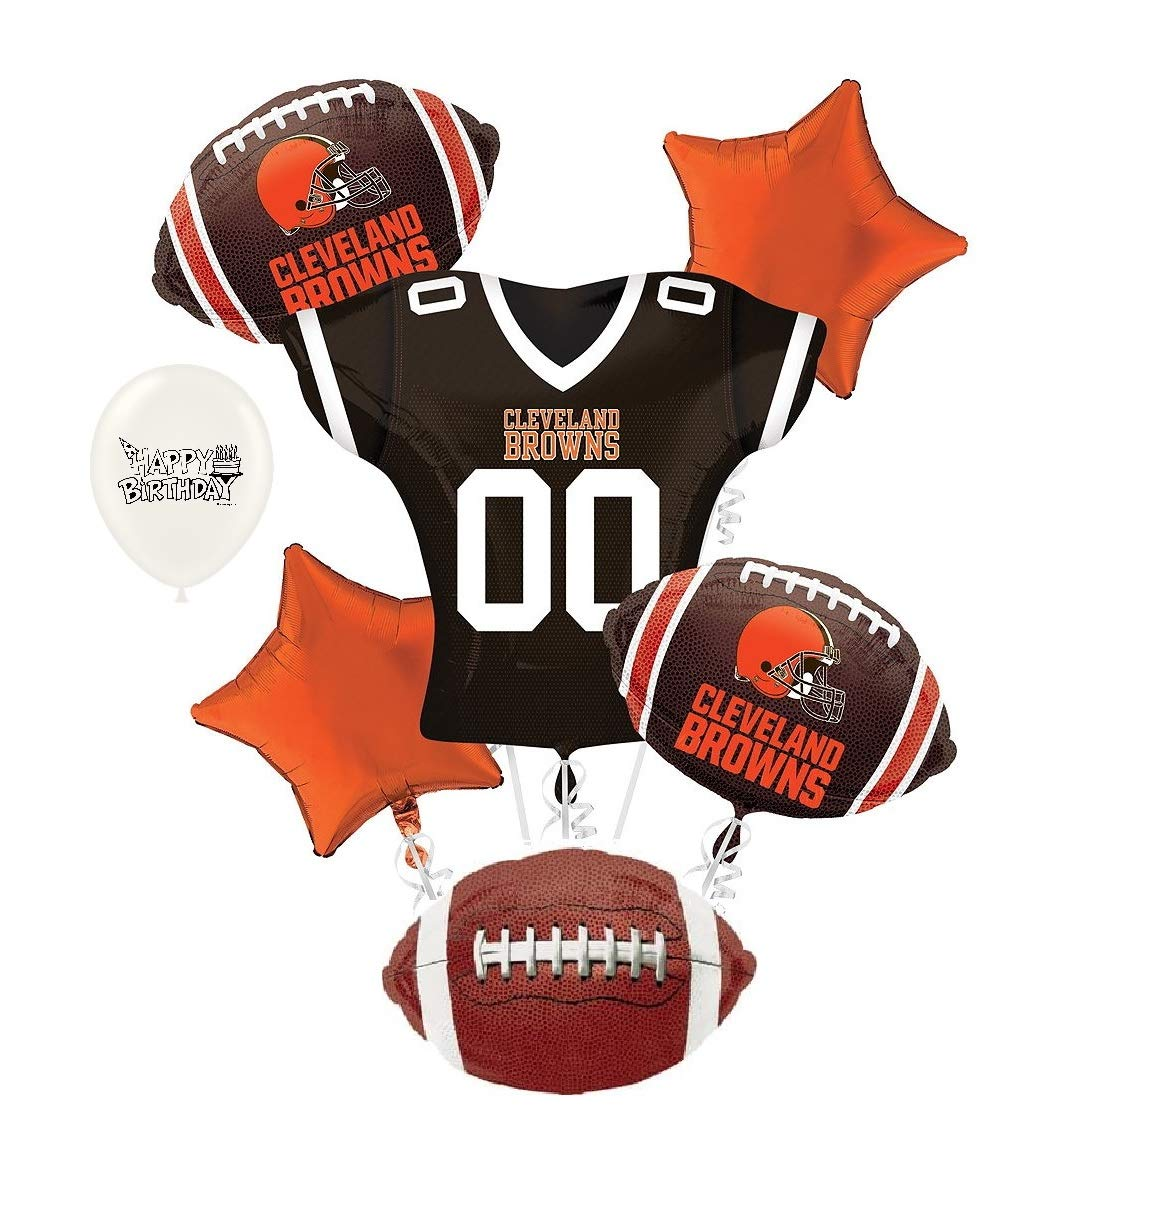 27dc2ccc Amazon.com: Cleveland Browns NFL Football Party Balloon Bouquet ...